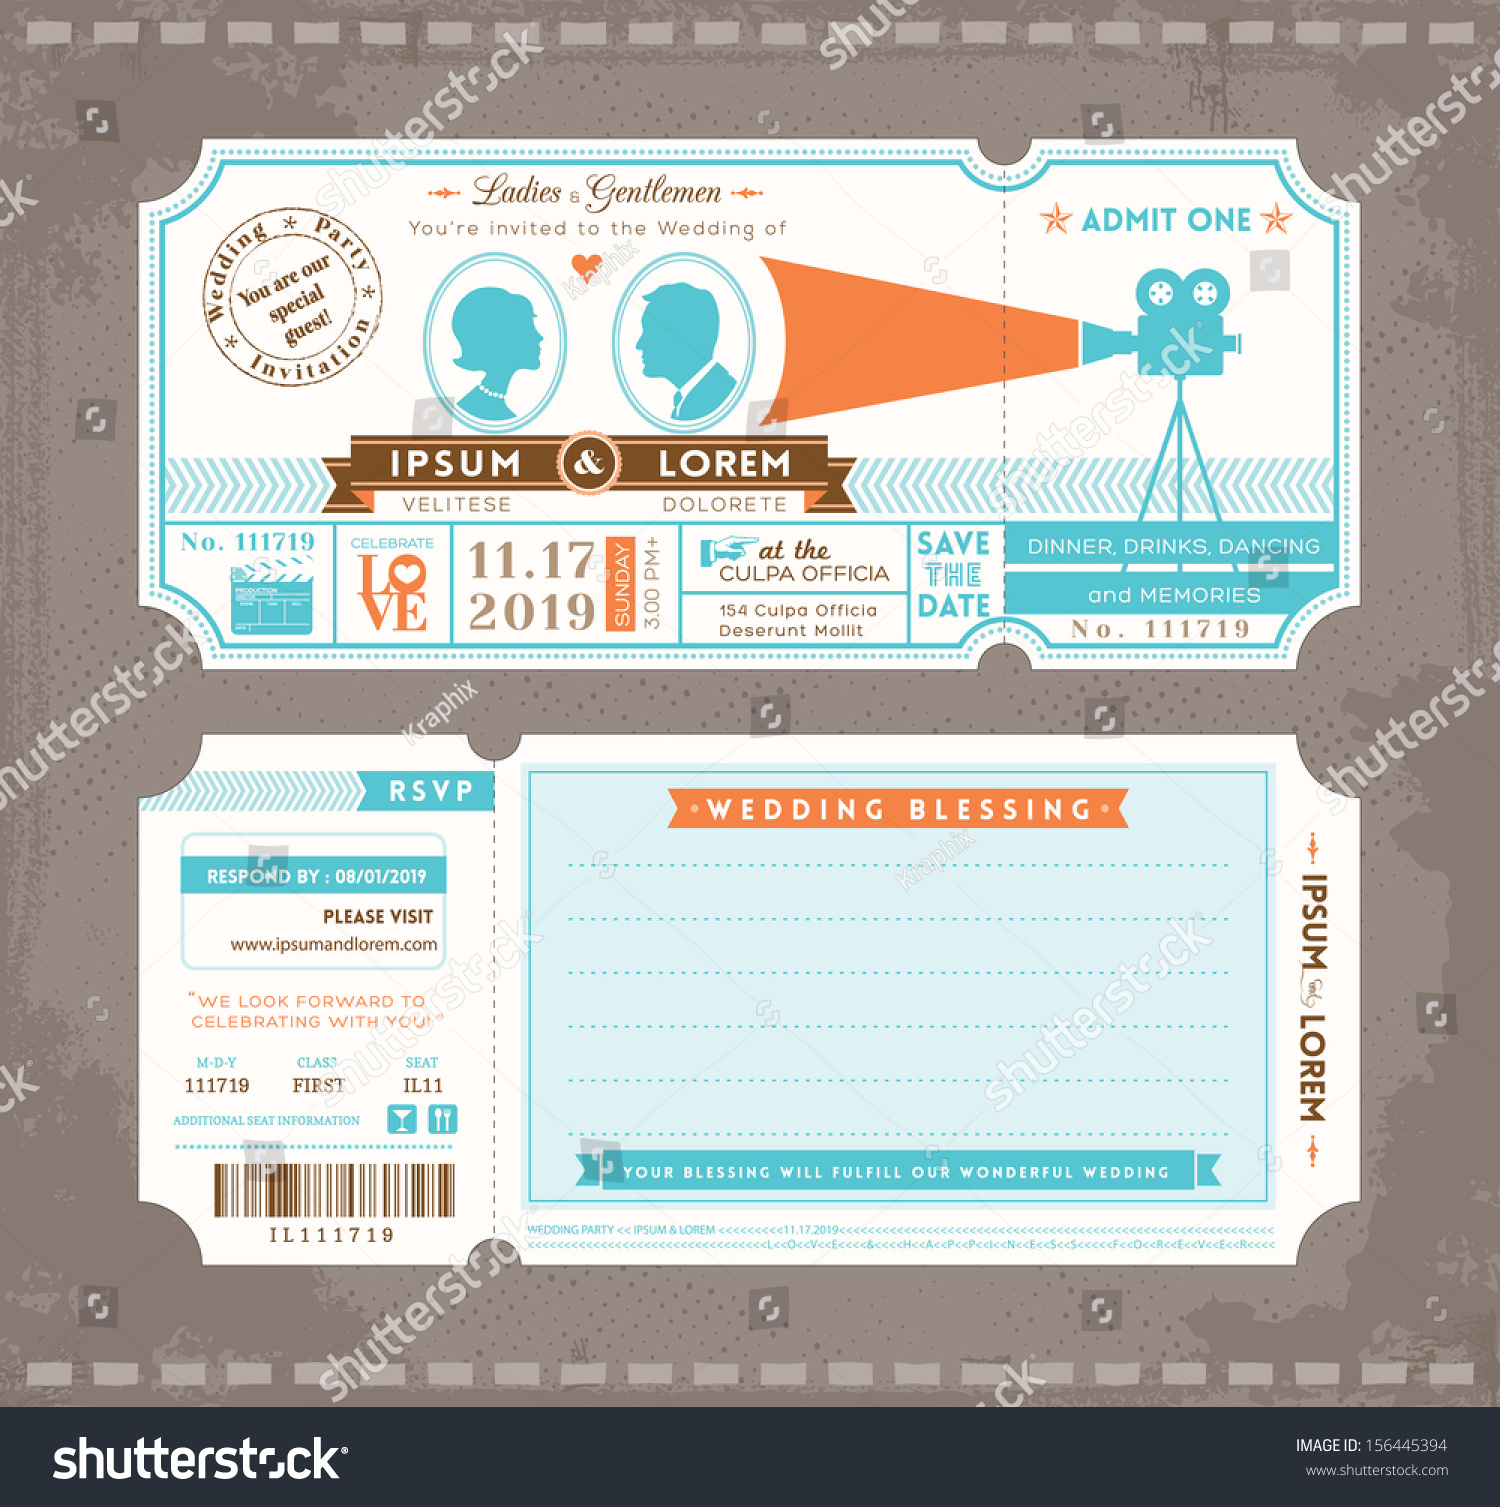 Vector Movie Ticket Wedding Invitation Design Template  Dinner Tickets Template